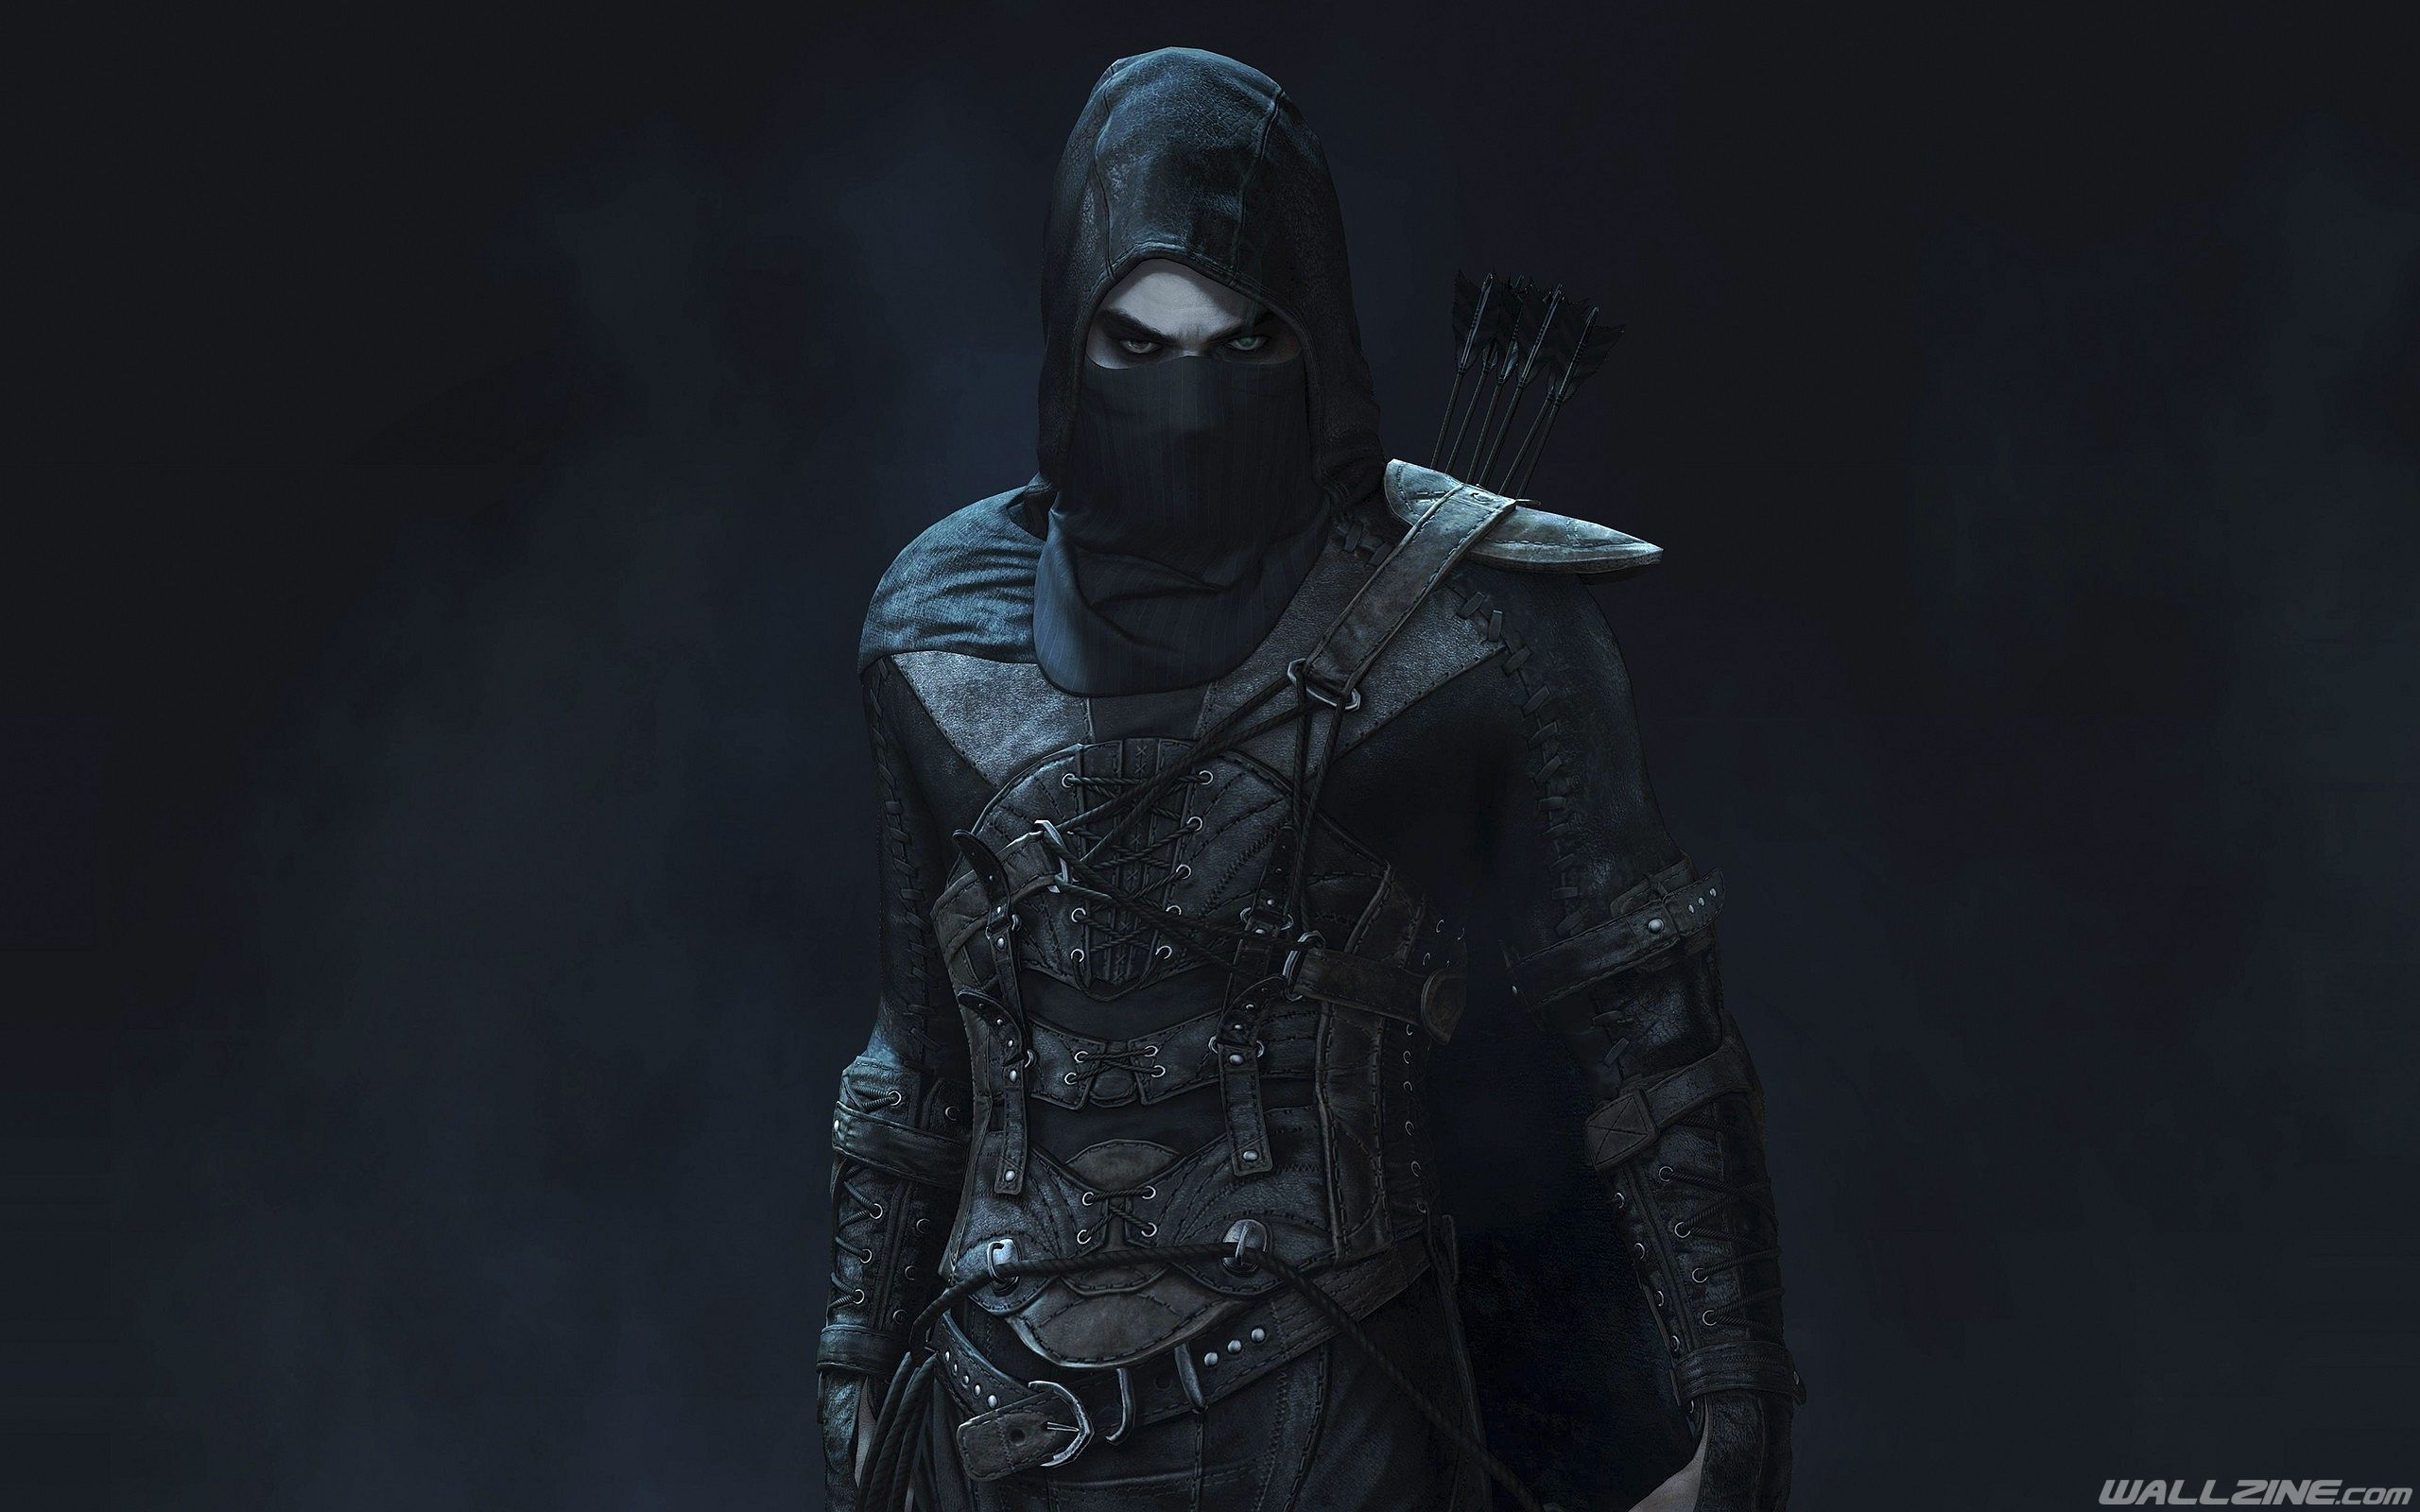 thief game wallpaper | hd desktop wallpapers | pinterest